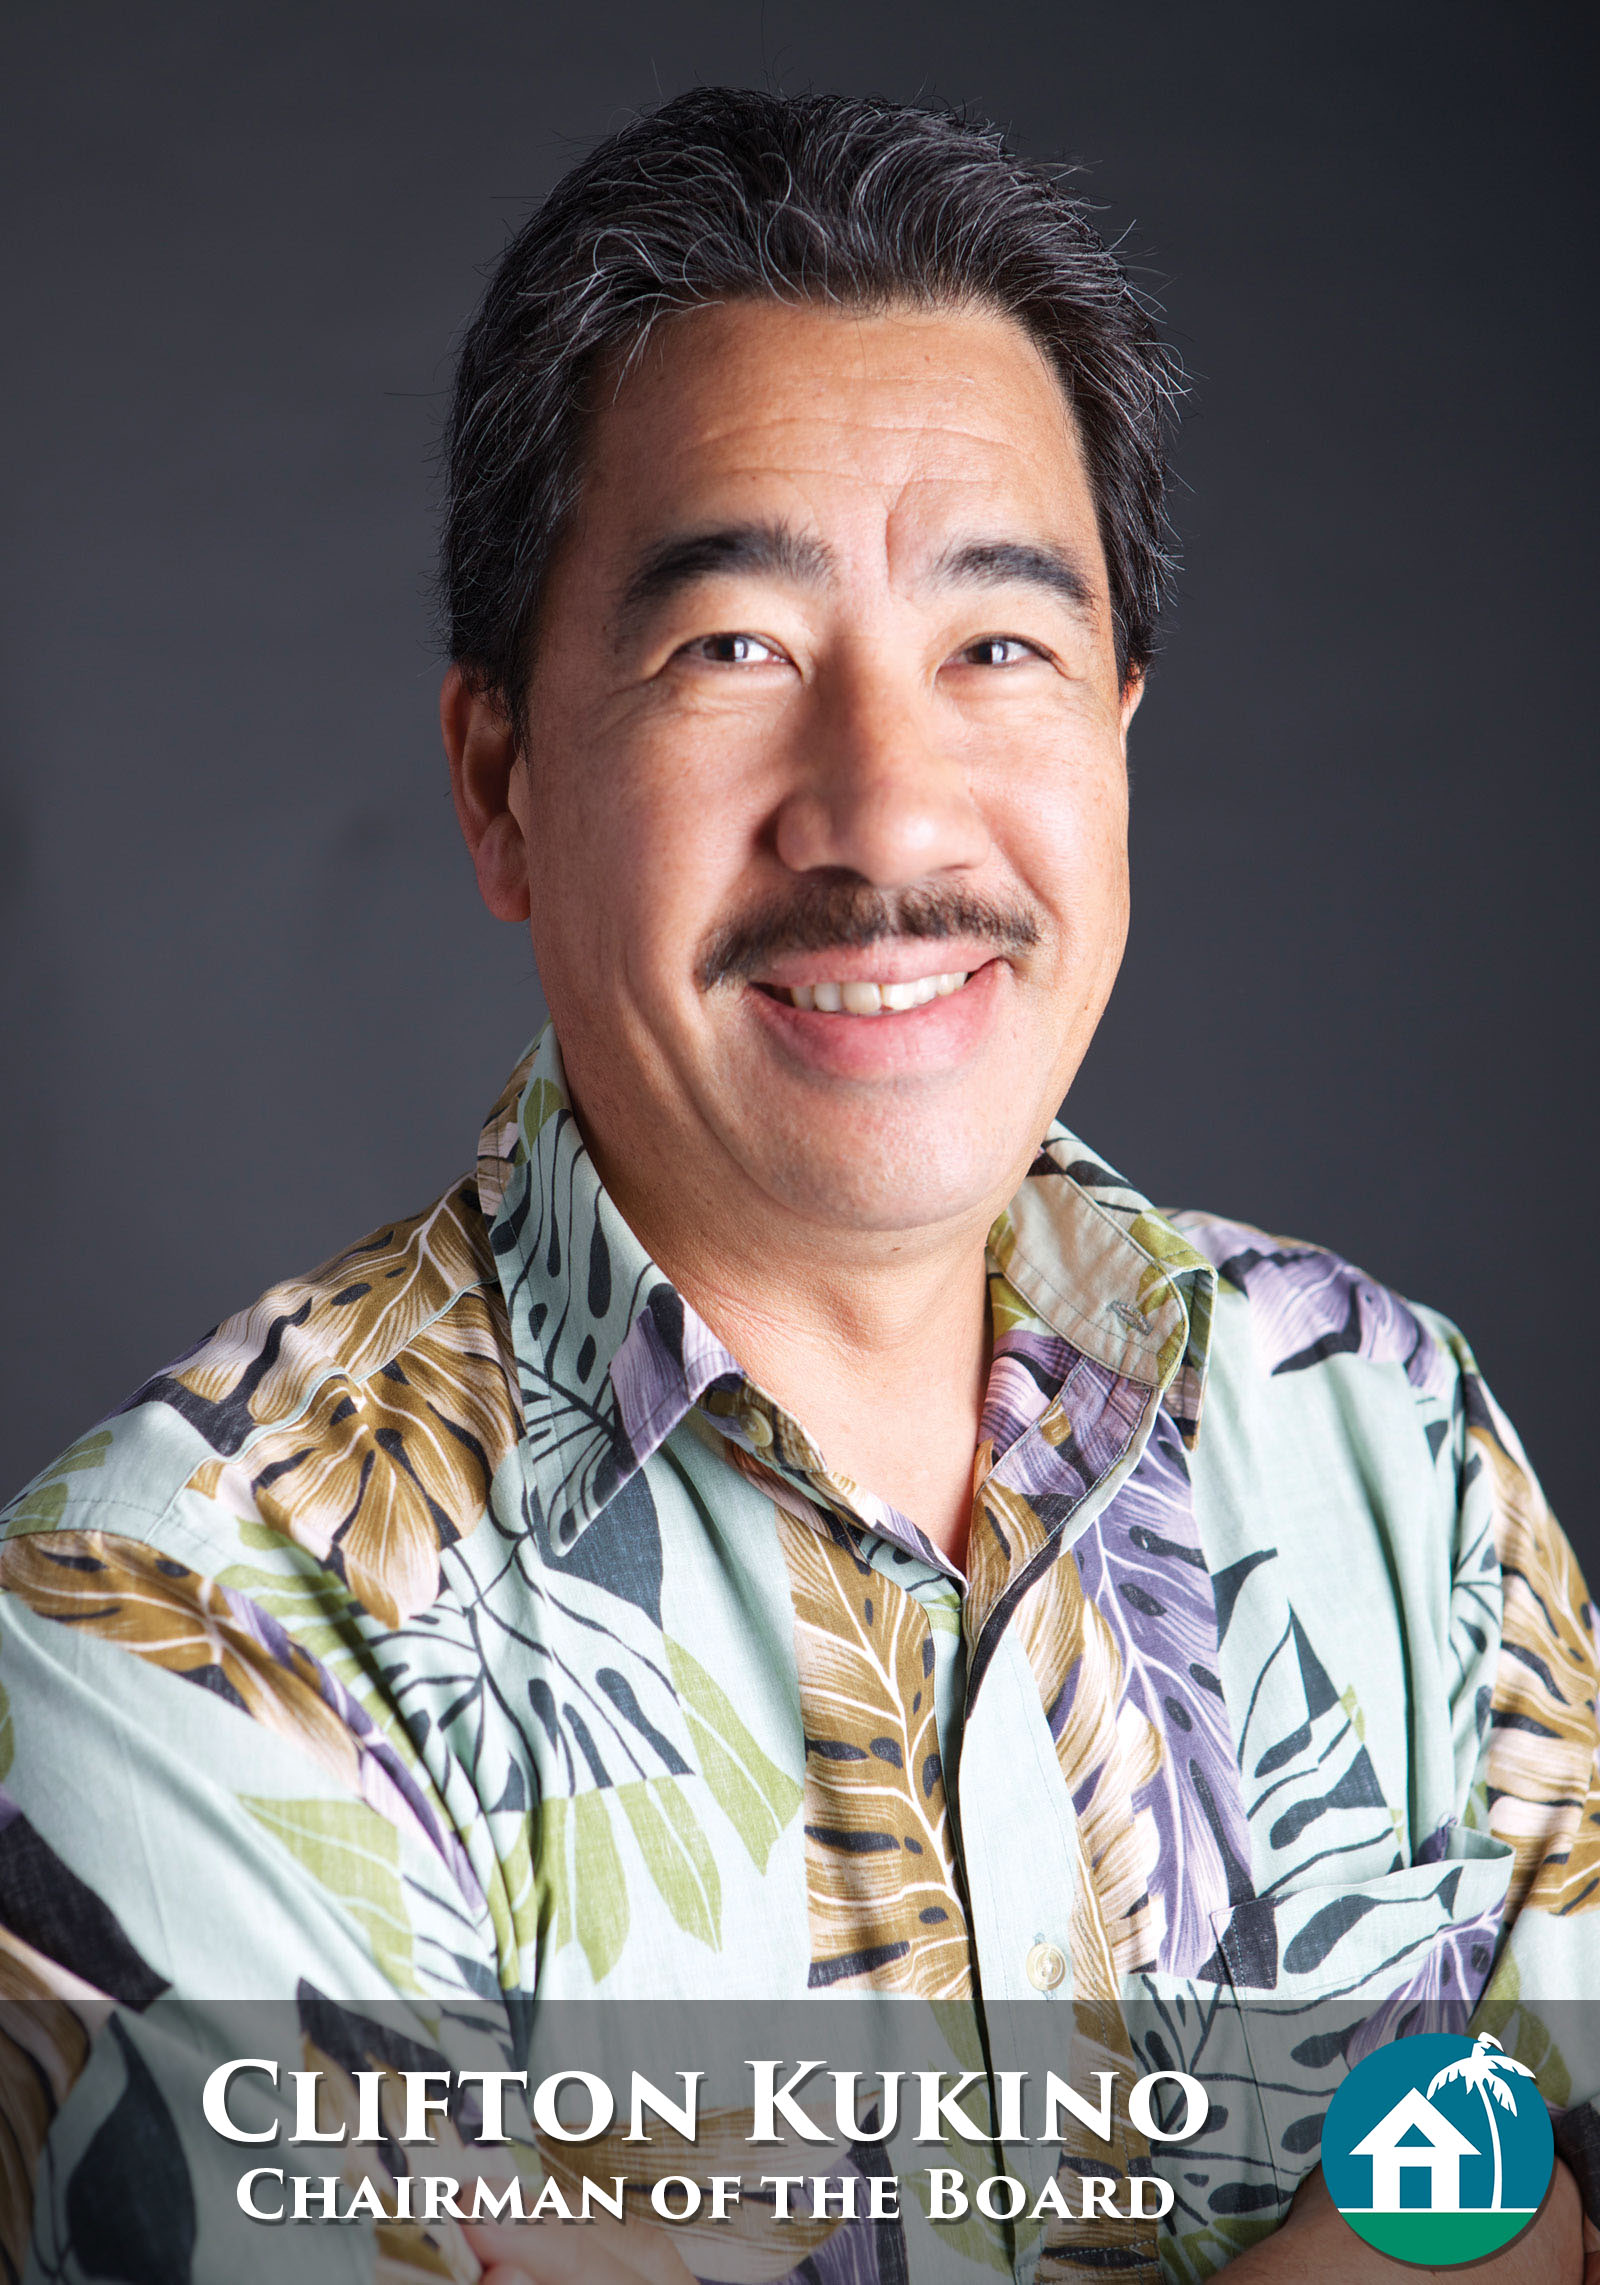 Board of Director and Chairman of the Board, Clifton Kukino, on behalf of Hawaii Information Service